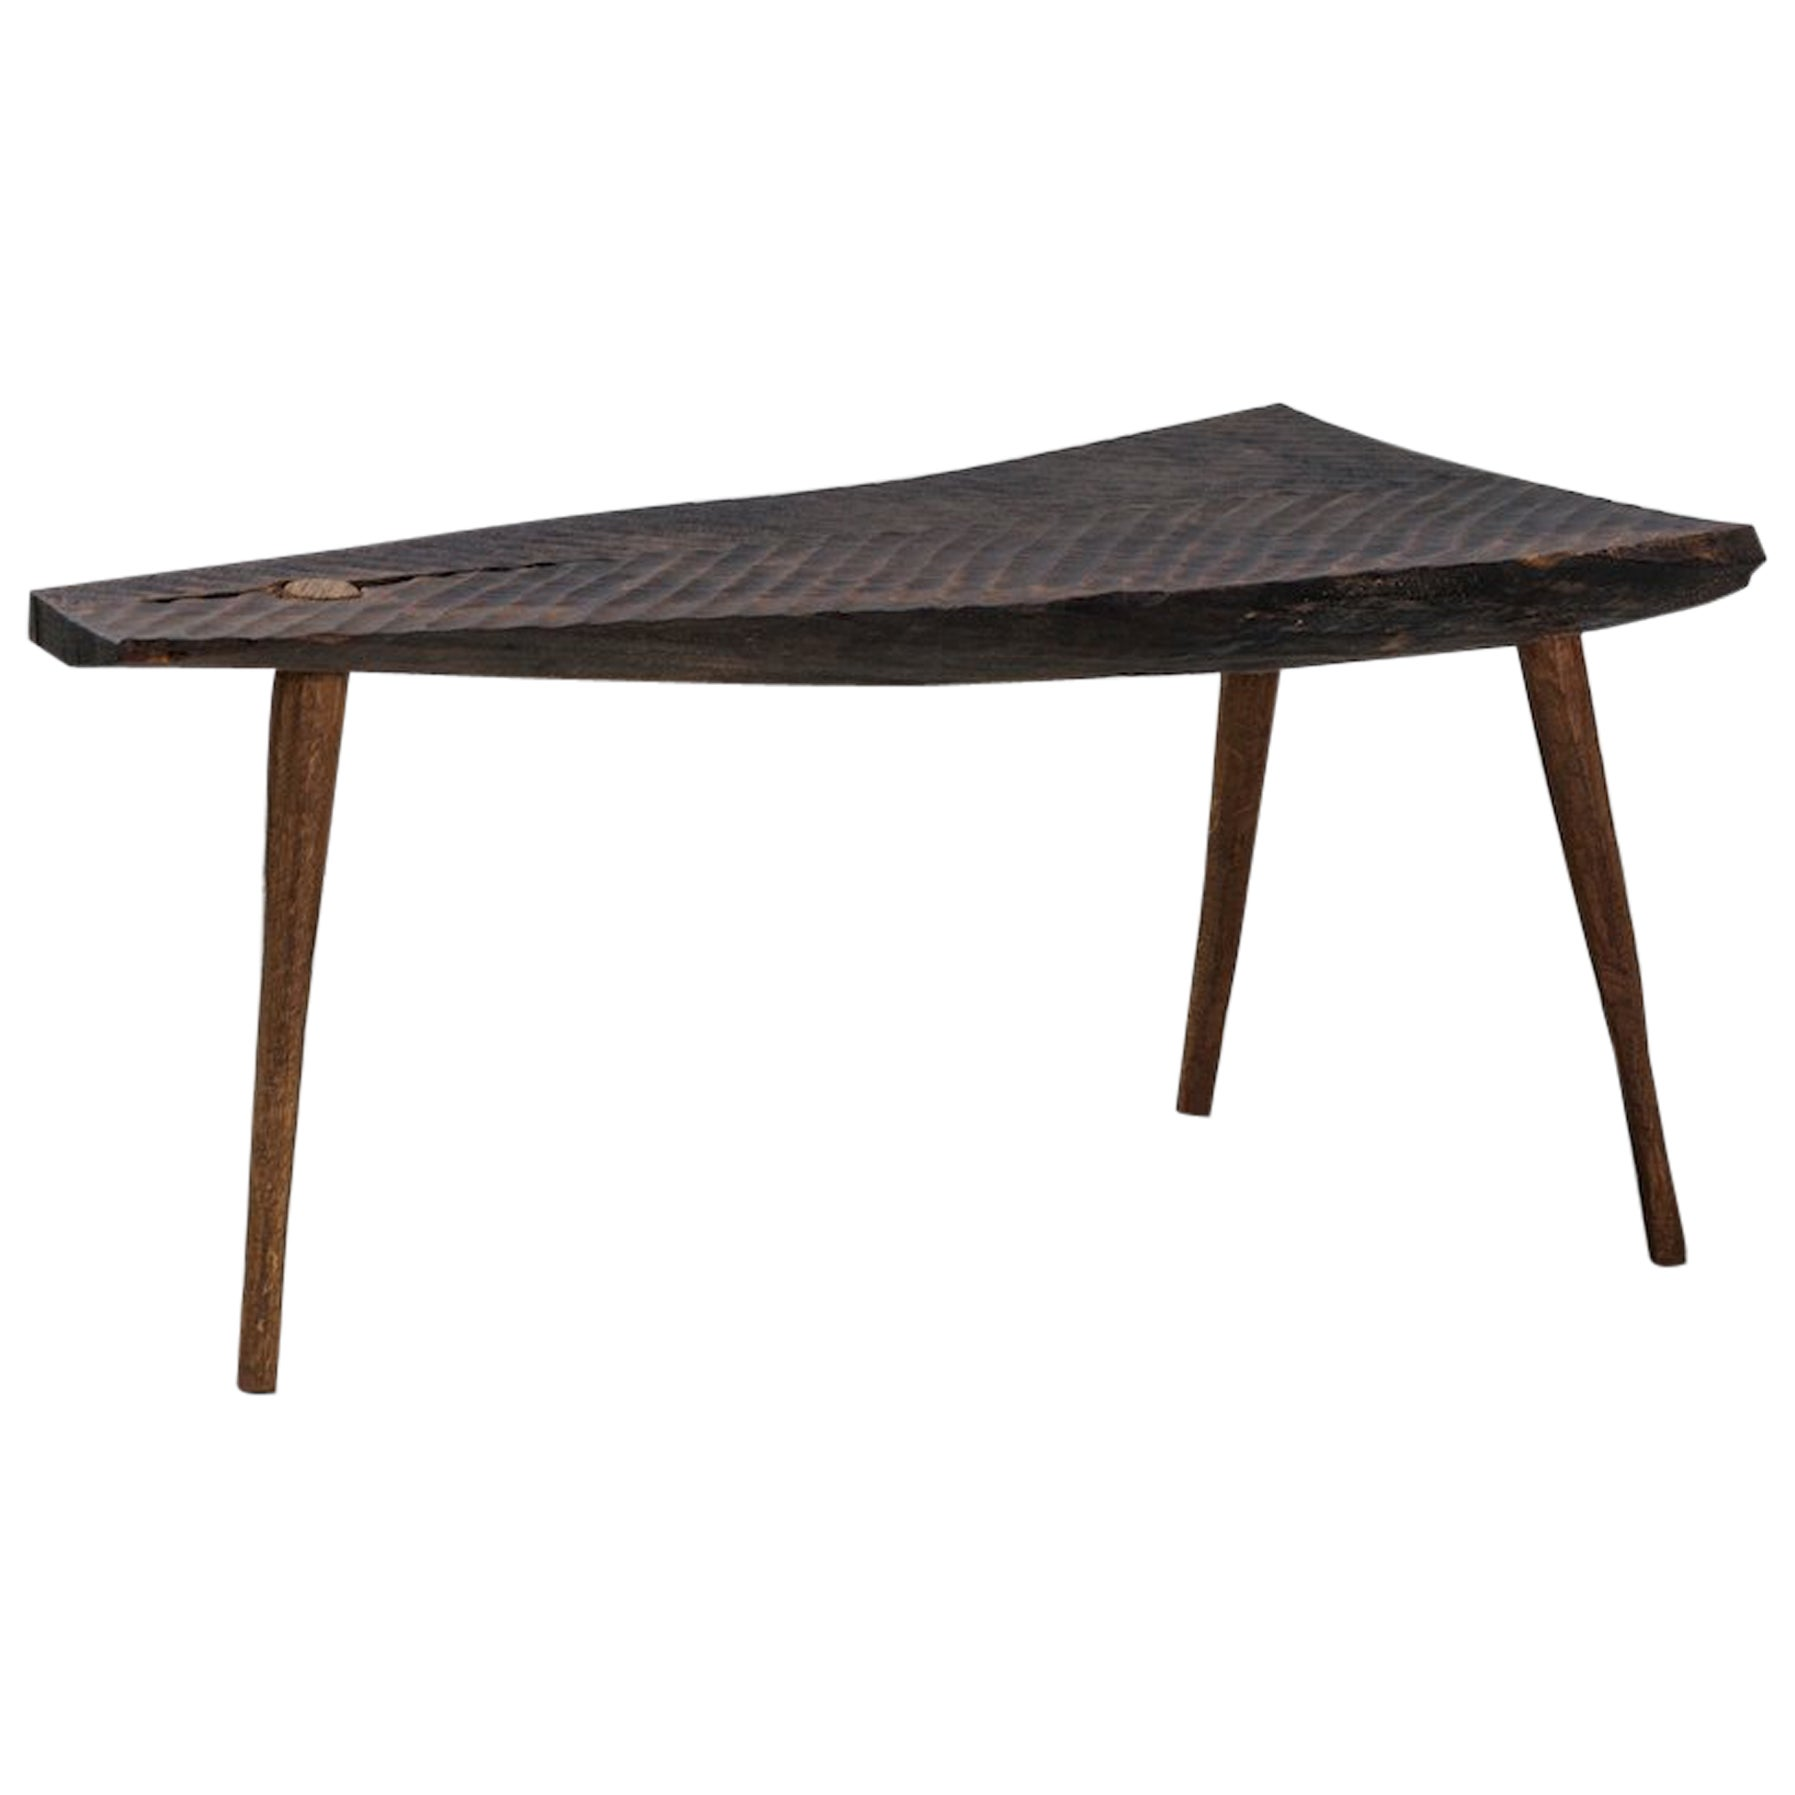 Contemporary Brutalist Style Small Table #3 in Solid Oak and Linseed Oil